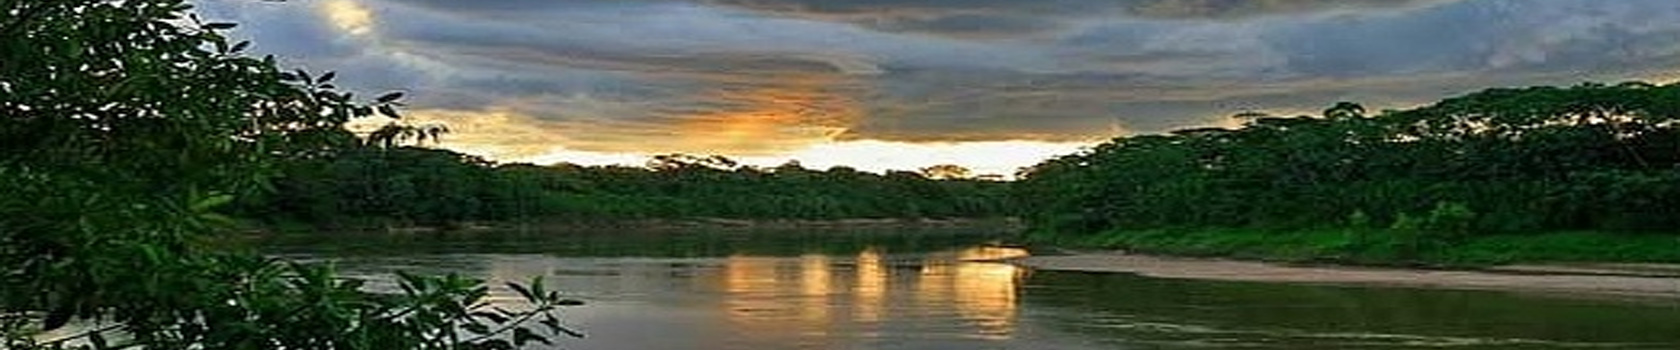 Amazon Peru – Sandoval Lake Lodge - Amazon Wildlife